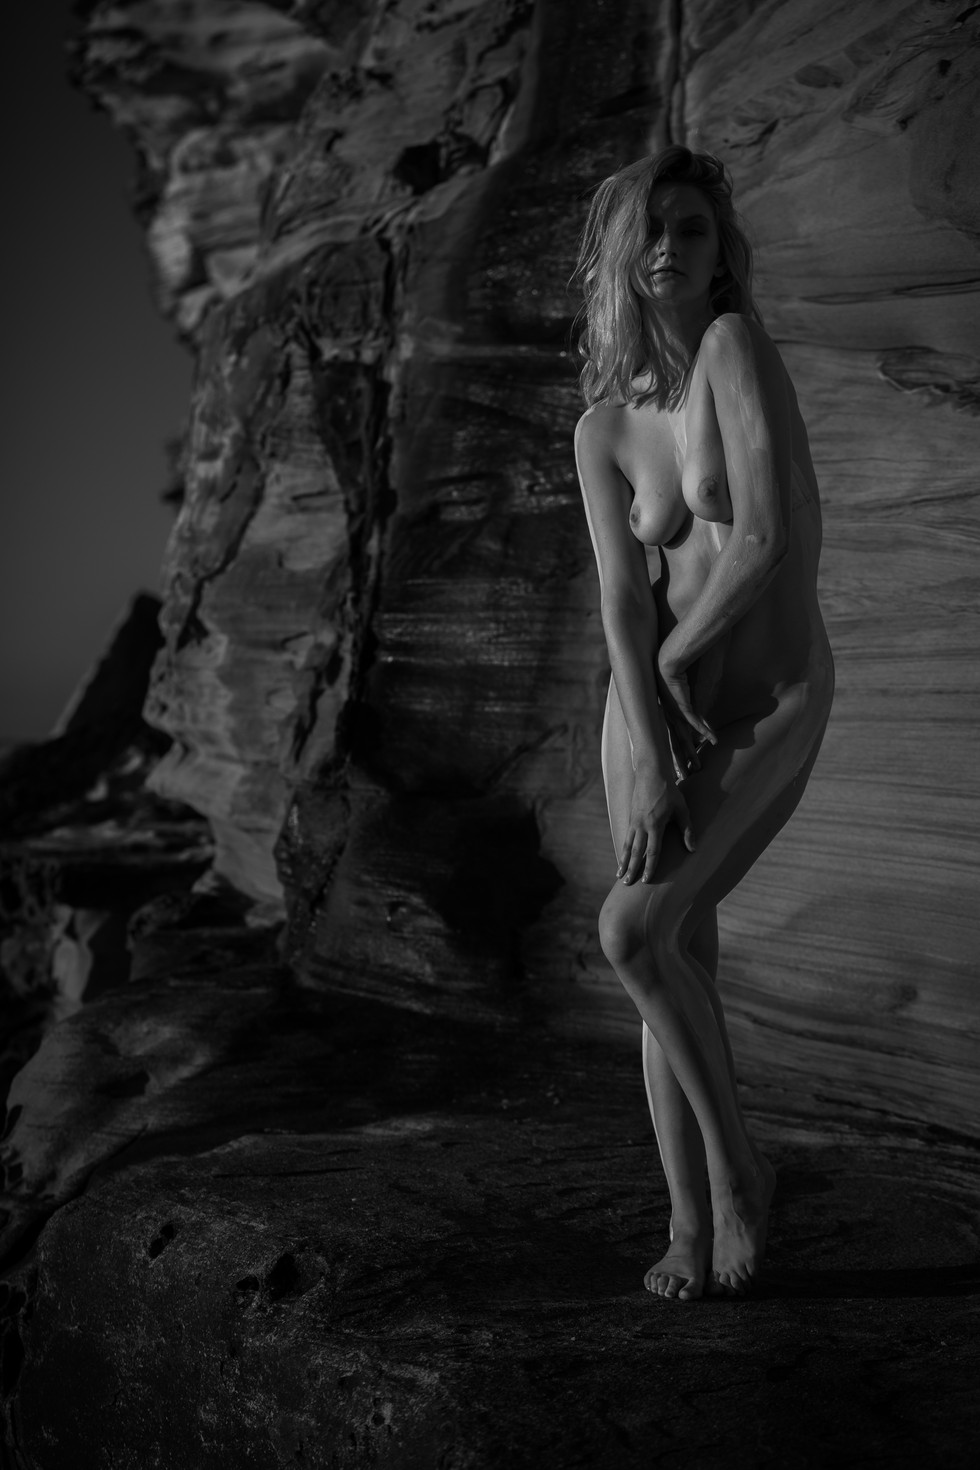 Brooke_by_CoogeePhotography-429518.jpg